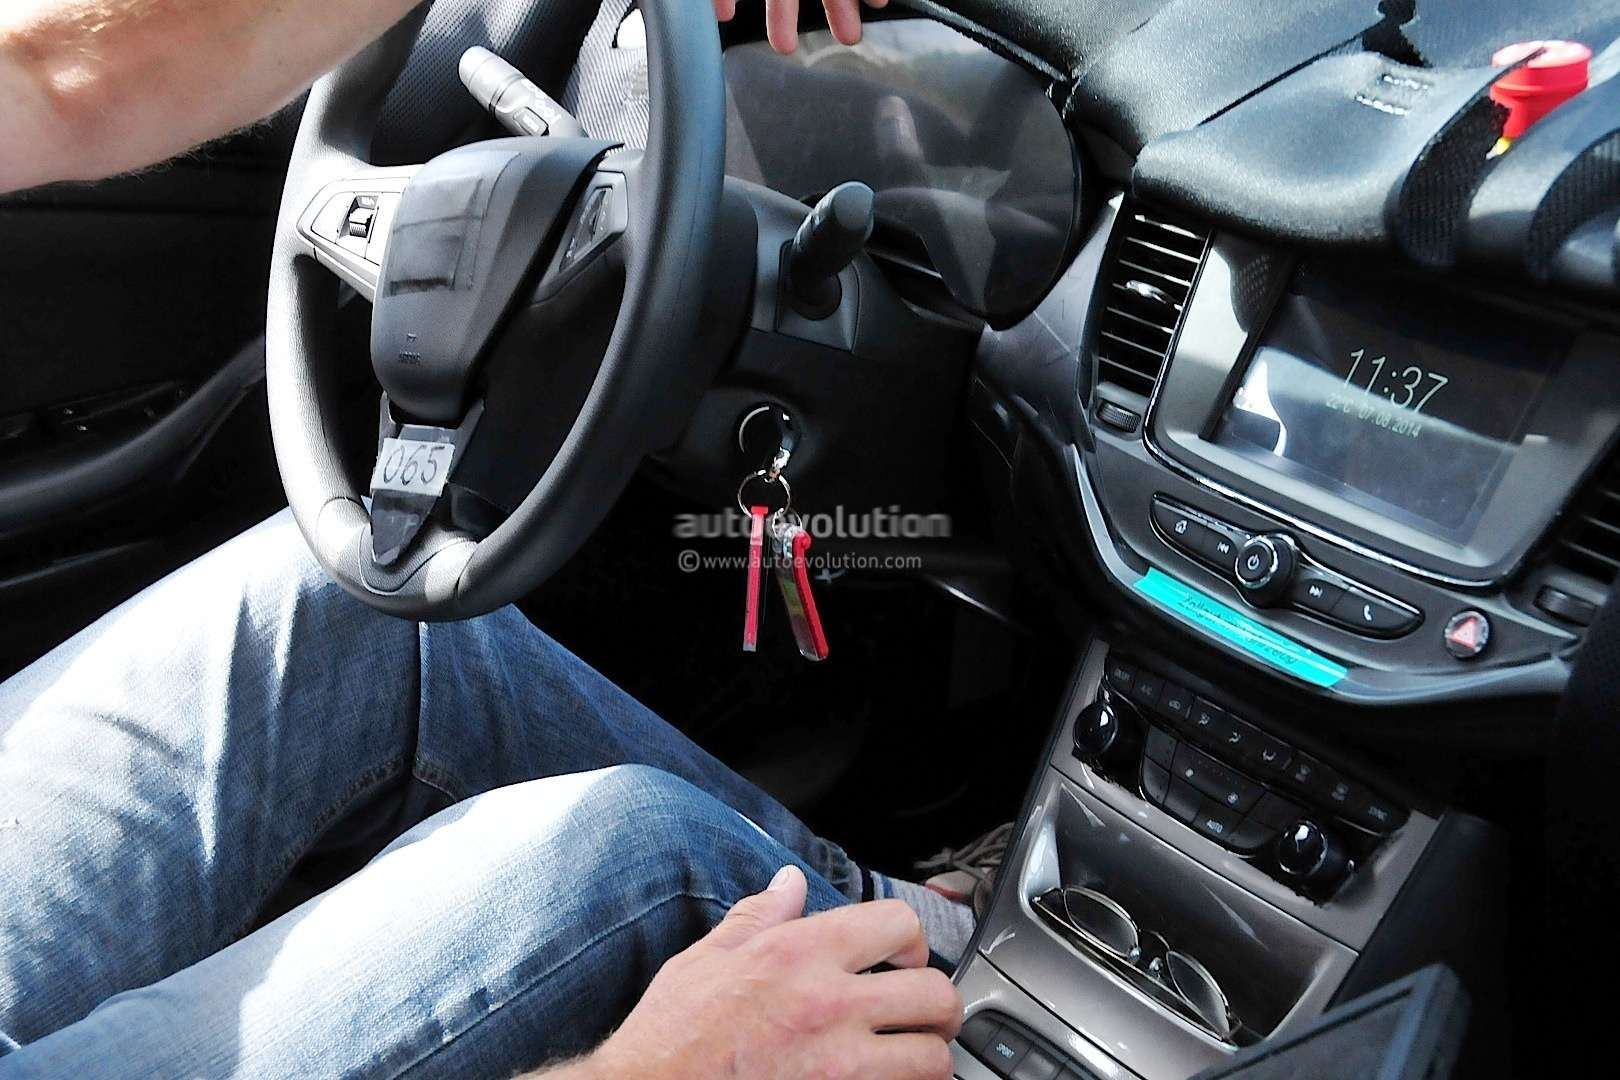 new-opel-astra-dashboard-revealed-in-latest-spyshots_5